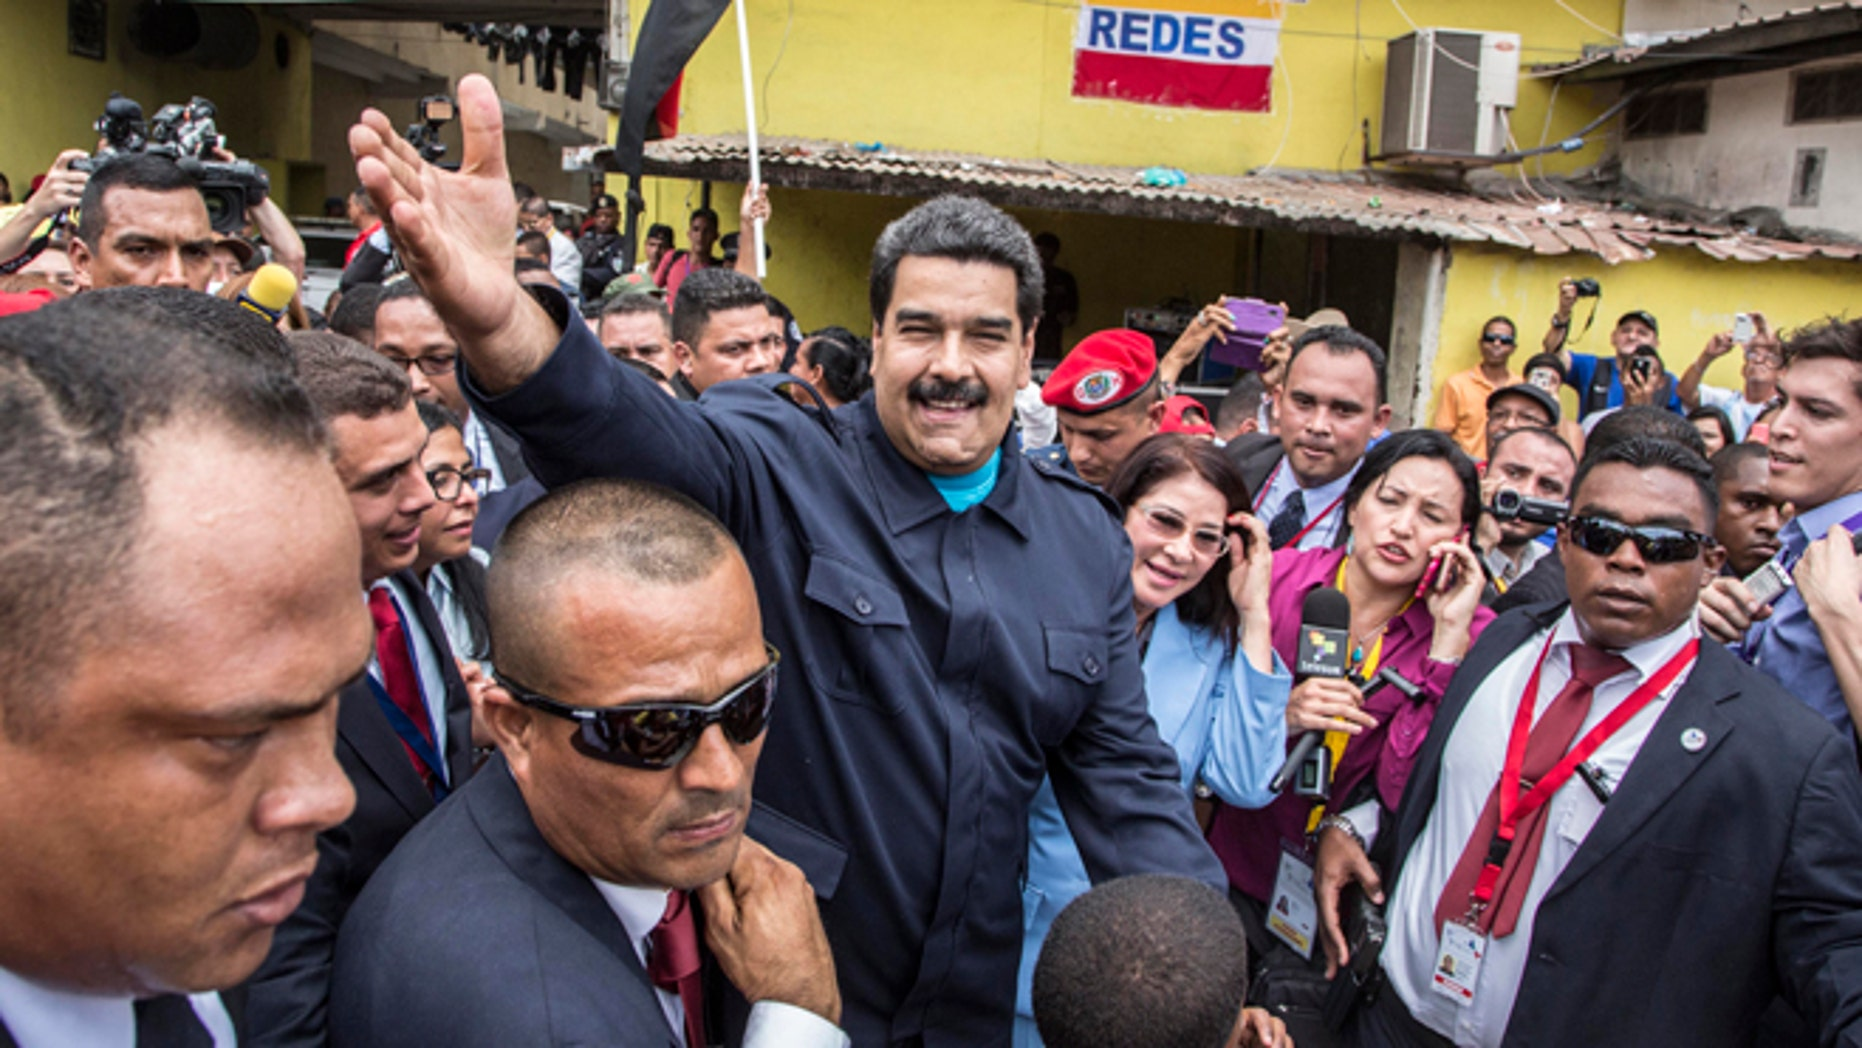 """Venezuela's President Nicolas Maduro greets supporters before a ceremony at a monument in  honor of the victims of the 1989 U.S. invasion, in the Chorrillo neighborhood which saw the heaviest fighting during the invasion, in Panama City, Friday, April 10, 2015. A crowd of several hundred chanted in Spanish, """"Maduro, stick it to the Yankee!"""" (AP Photo/Ramon Espinosa)"""